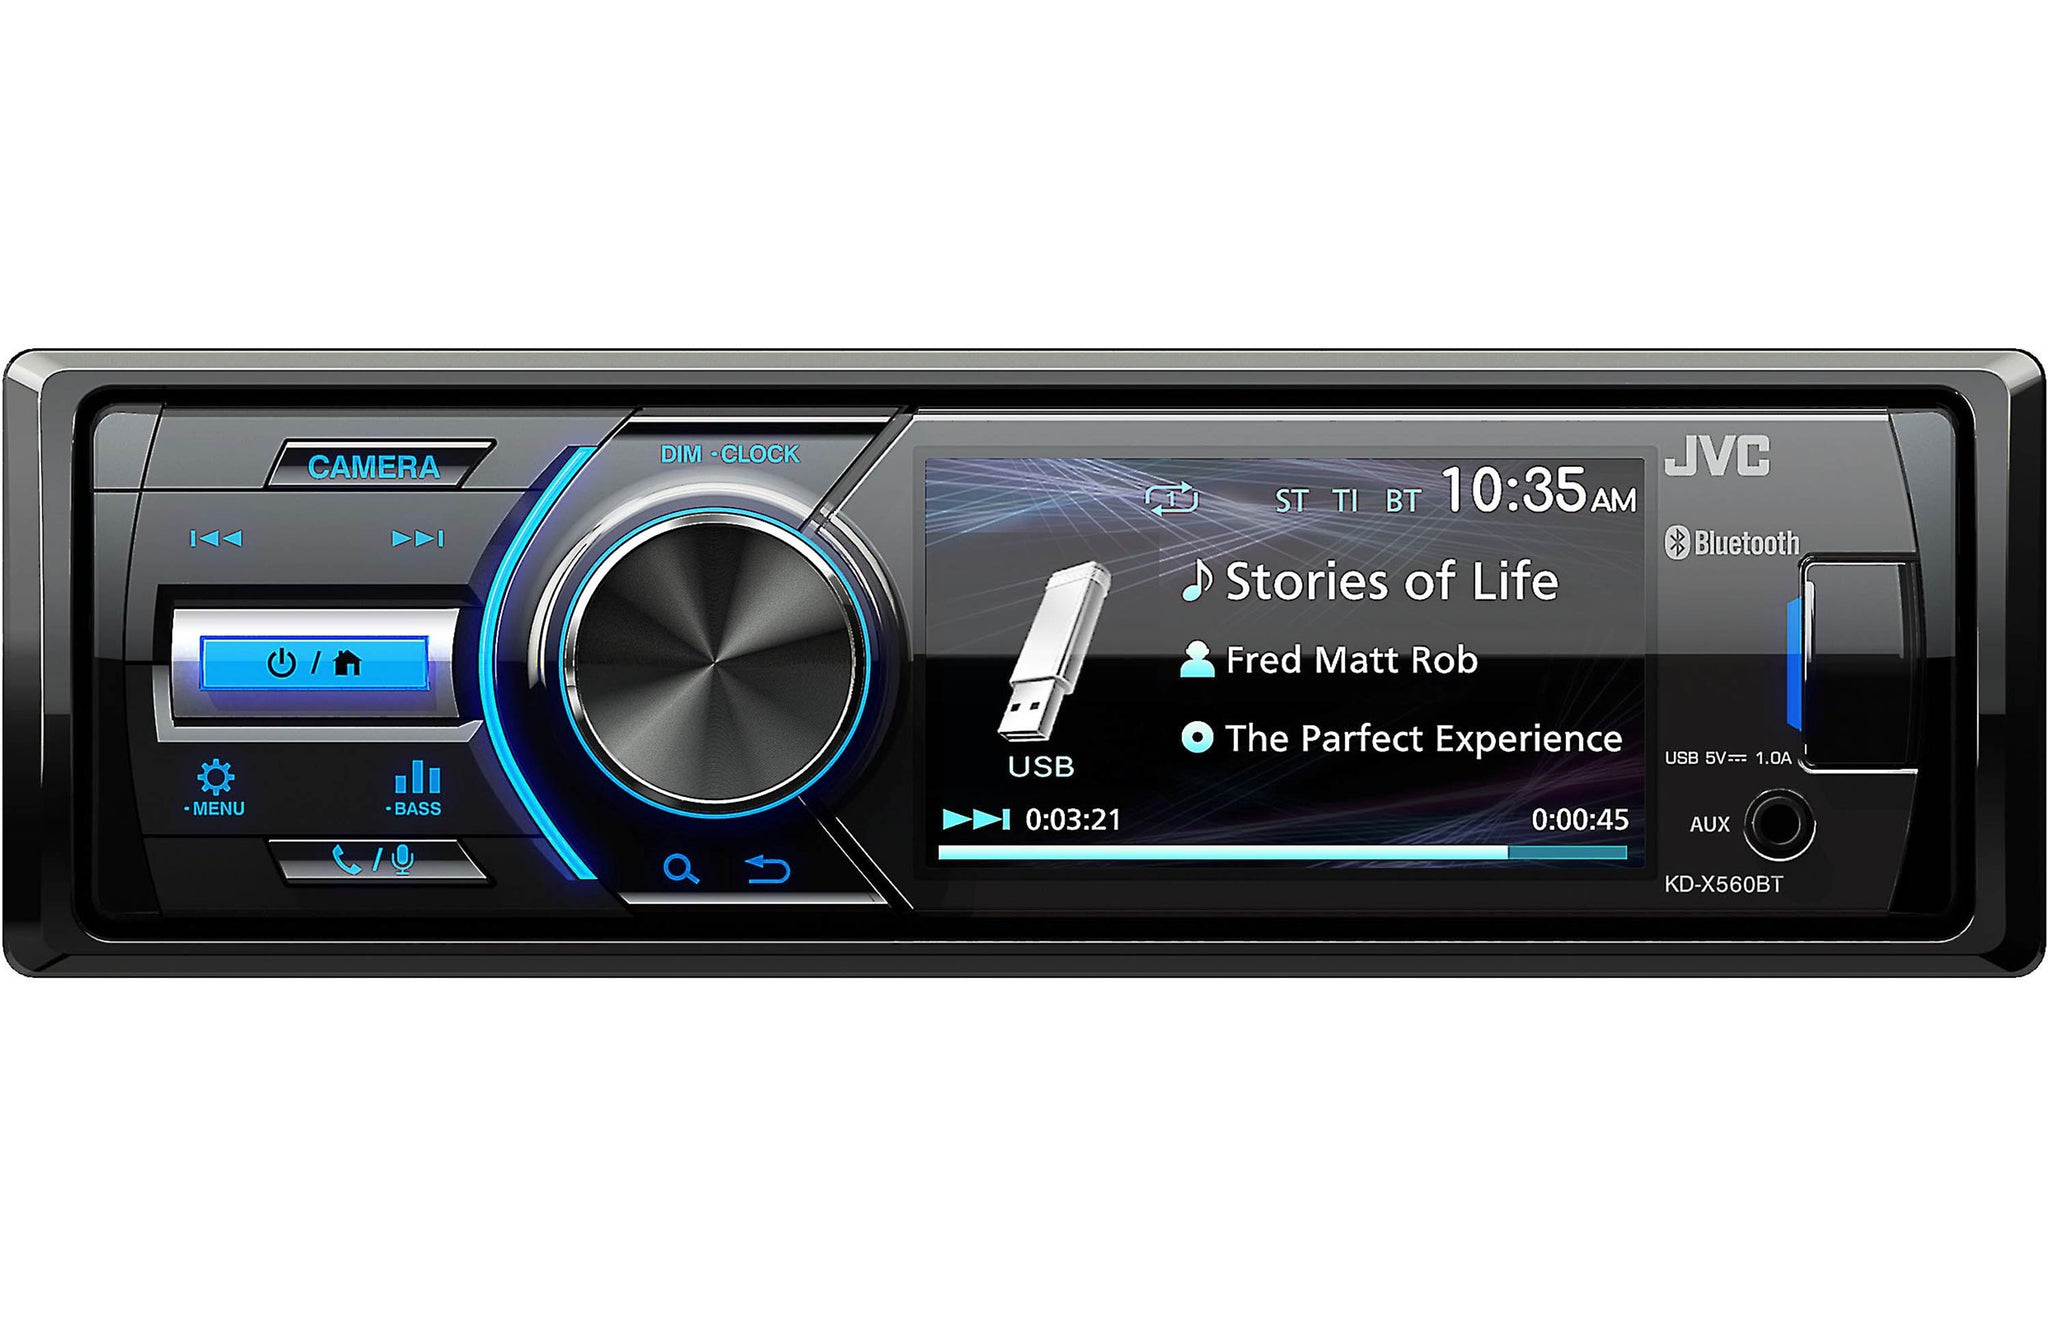 JVC KD-X560BT - Digital Media Marine Bluetooth Receiver iPhone/Android/USB/AUX (does not play CDs)